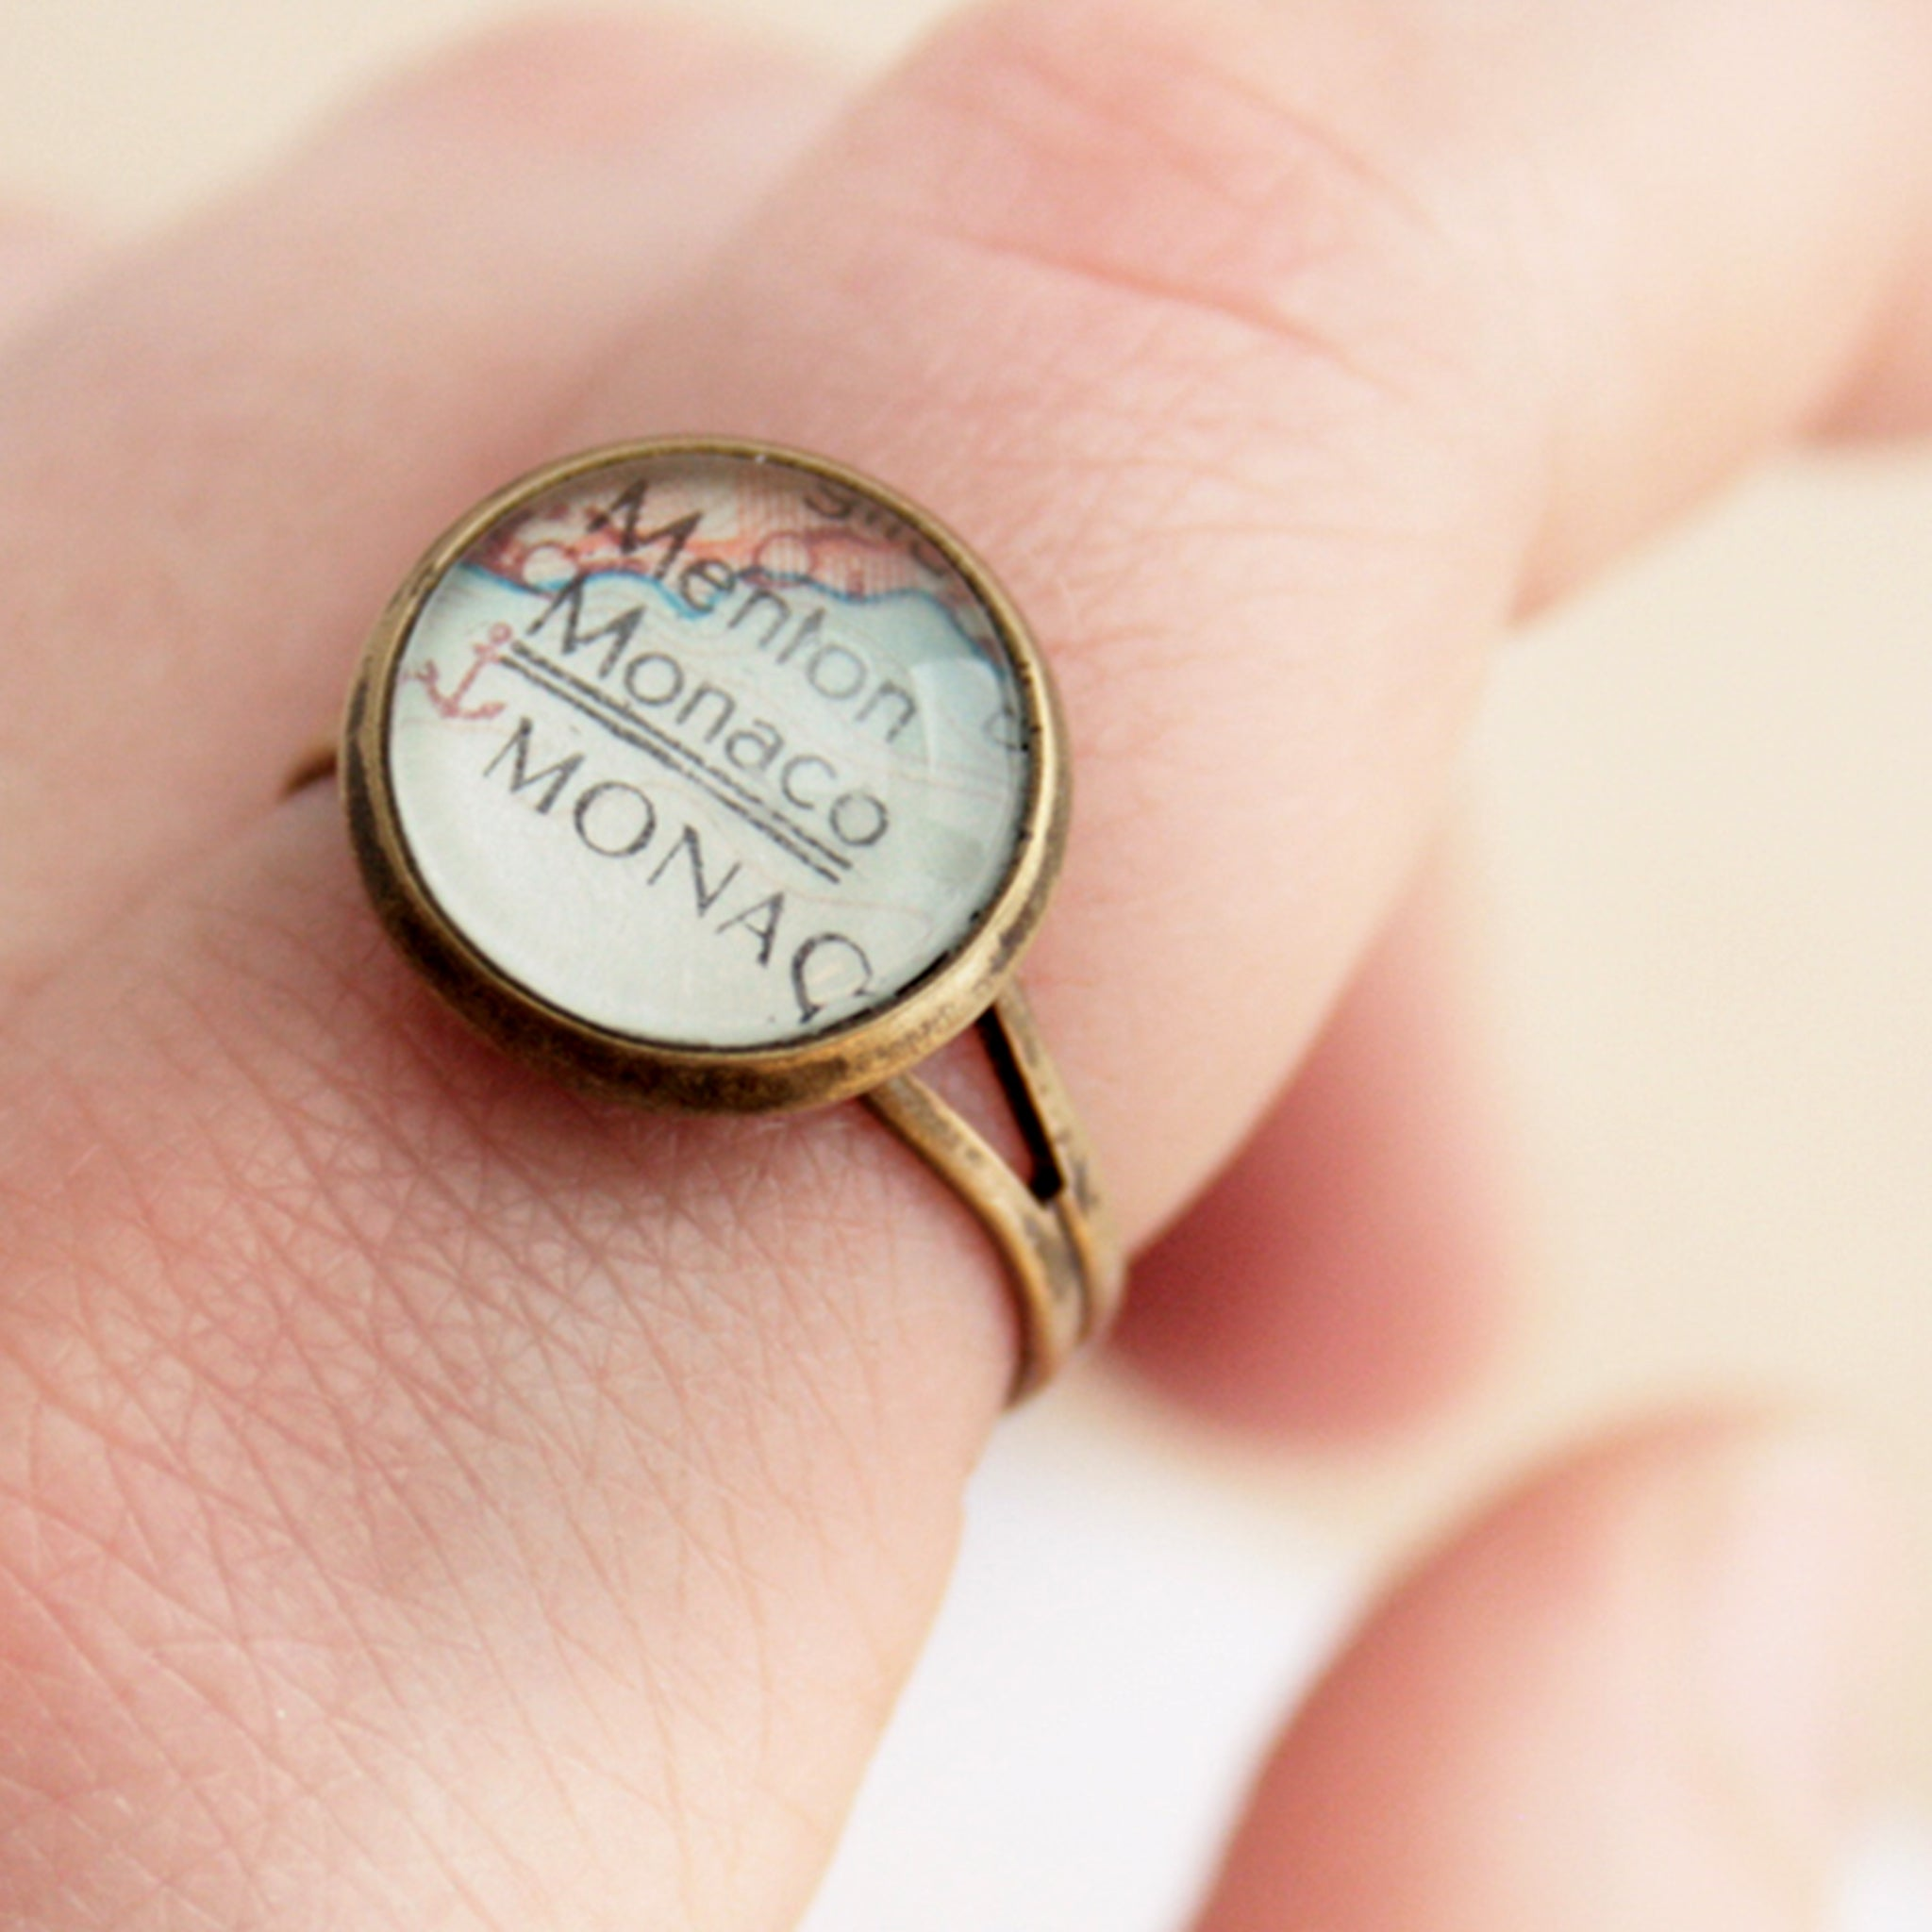 tiny wanderlust ring in antique bronze tone personalised with map of Monaco worn on hand